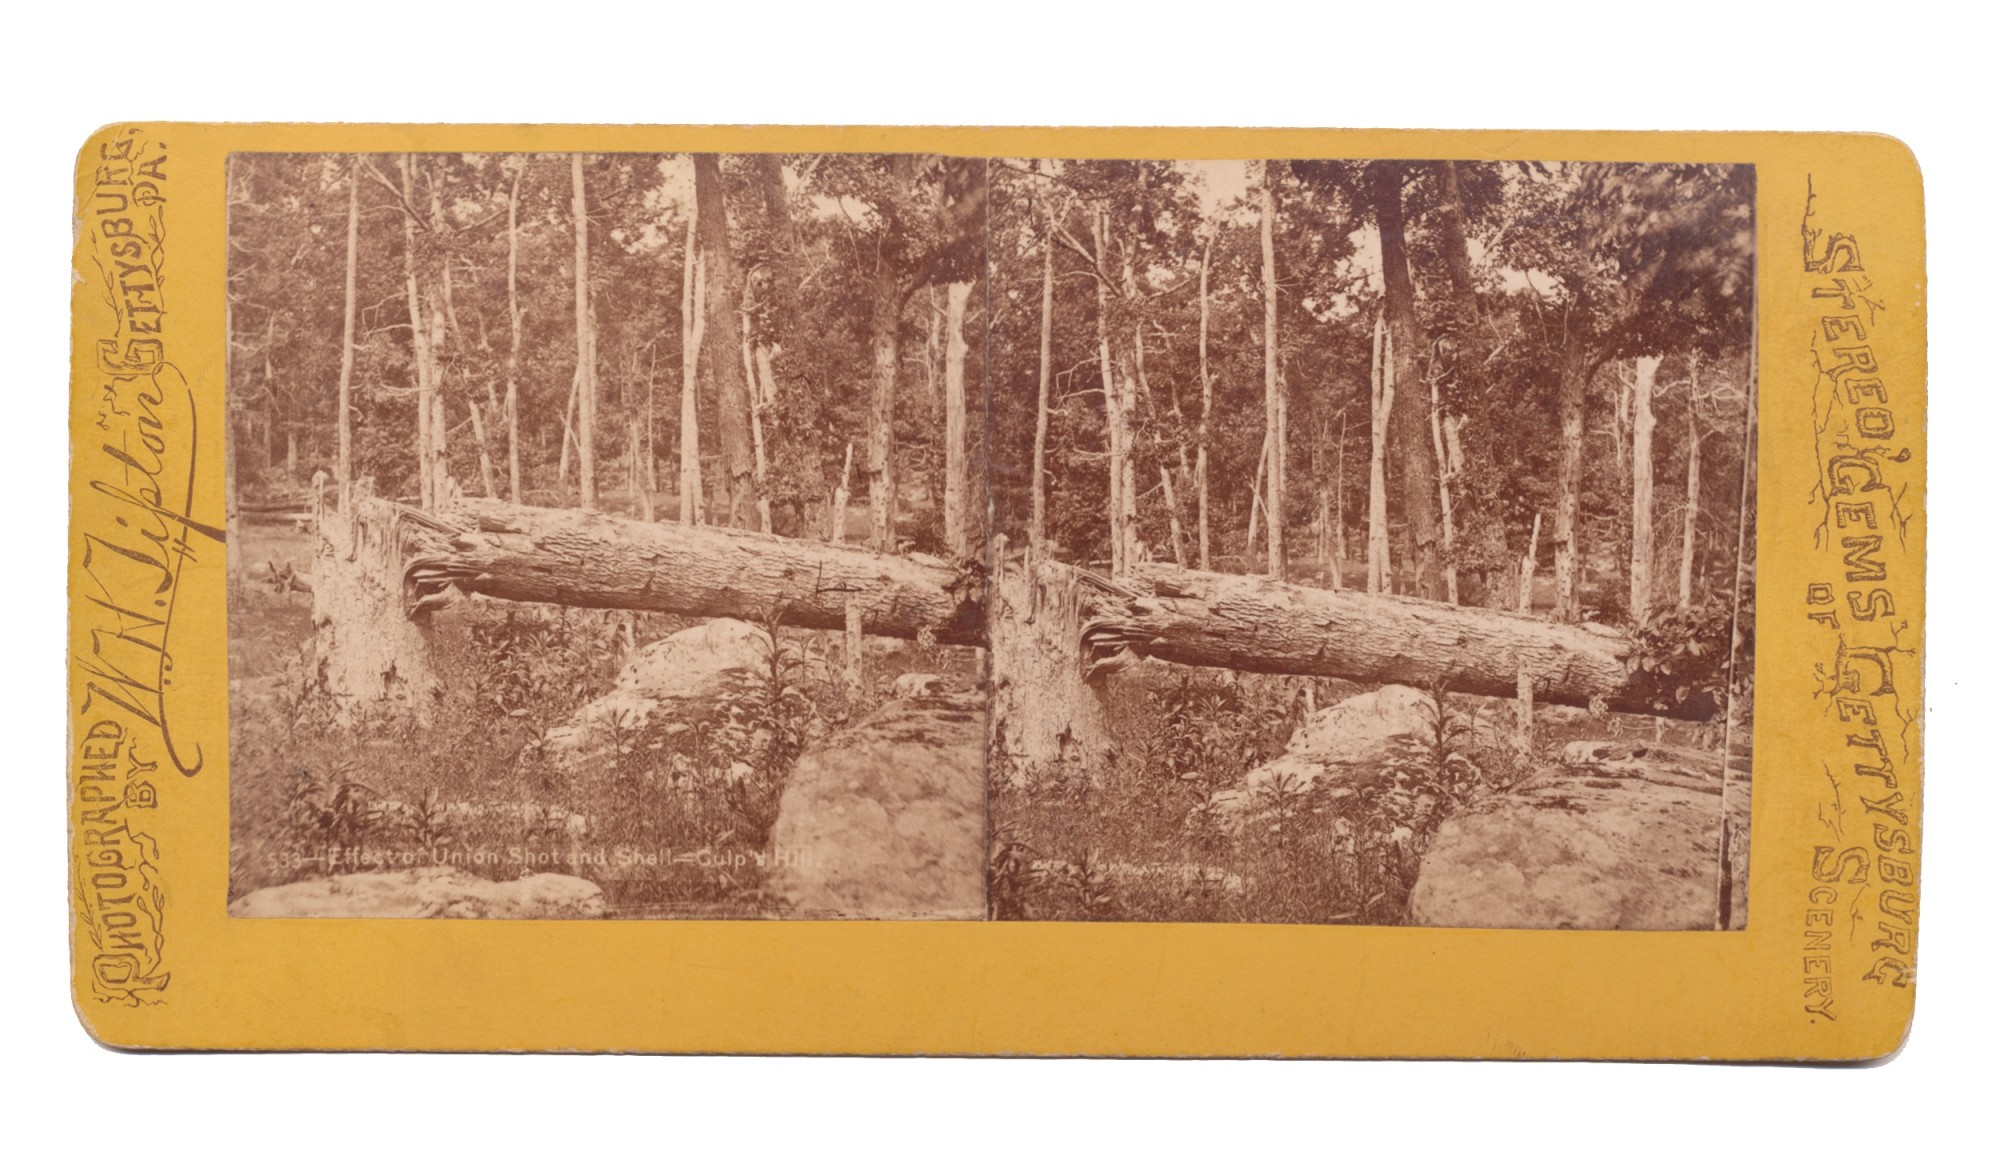 TIPTON STEREO VIEW OF BATTLE SCARRED TREES ON CULP'S HILL